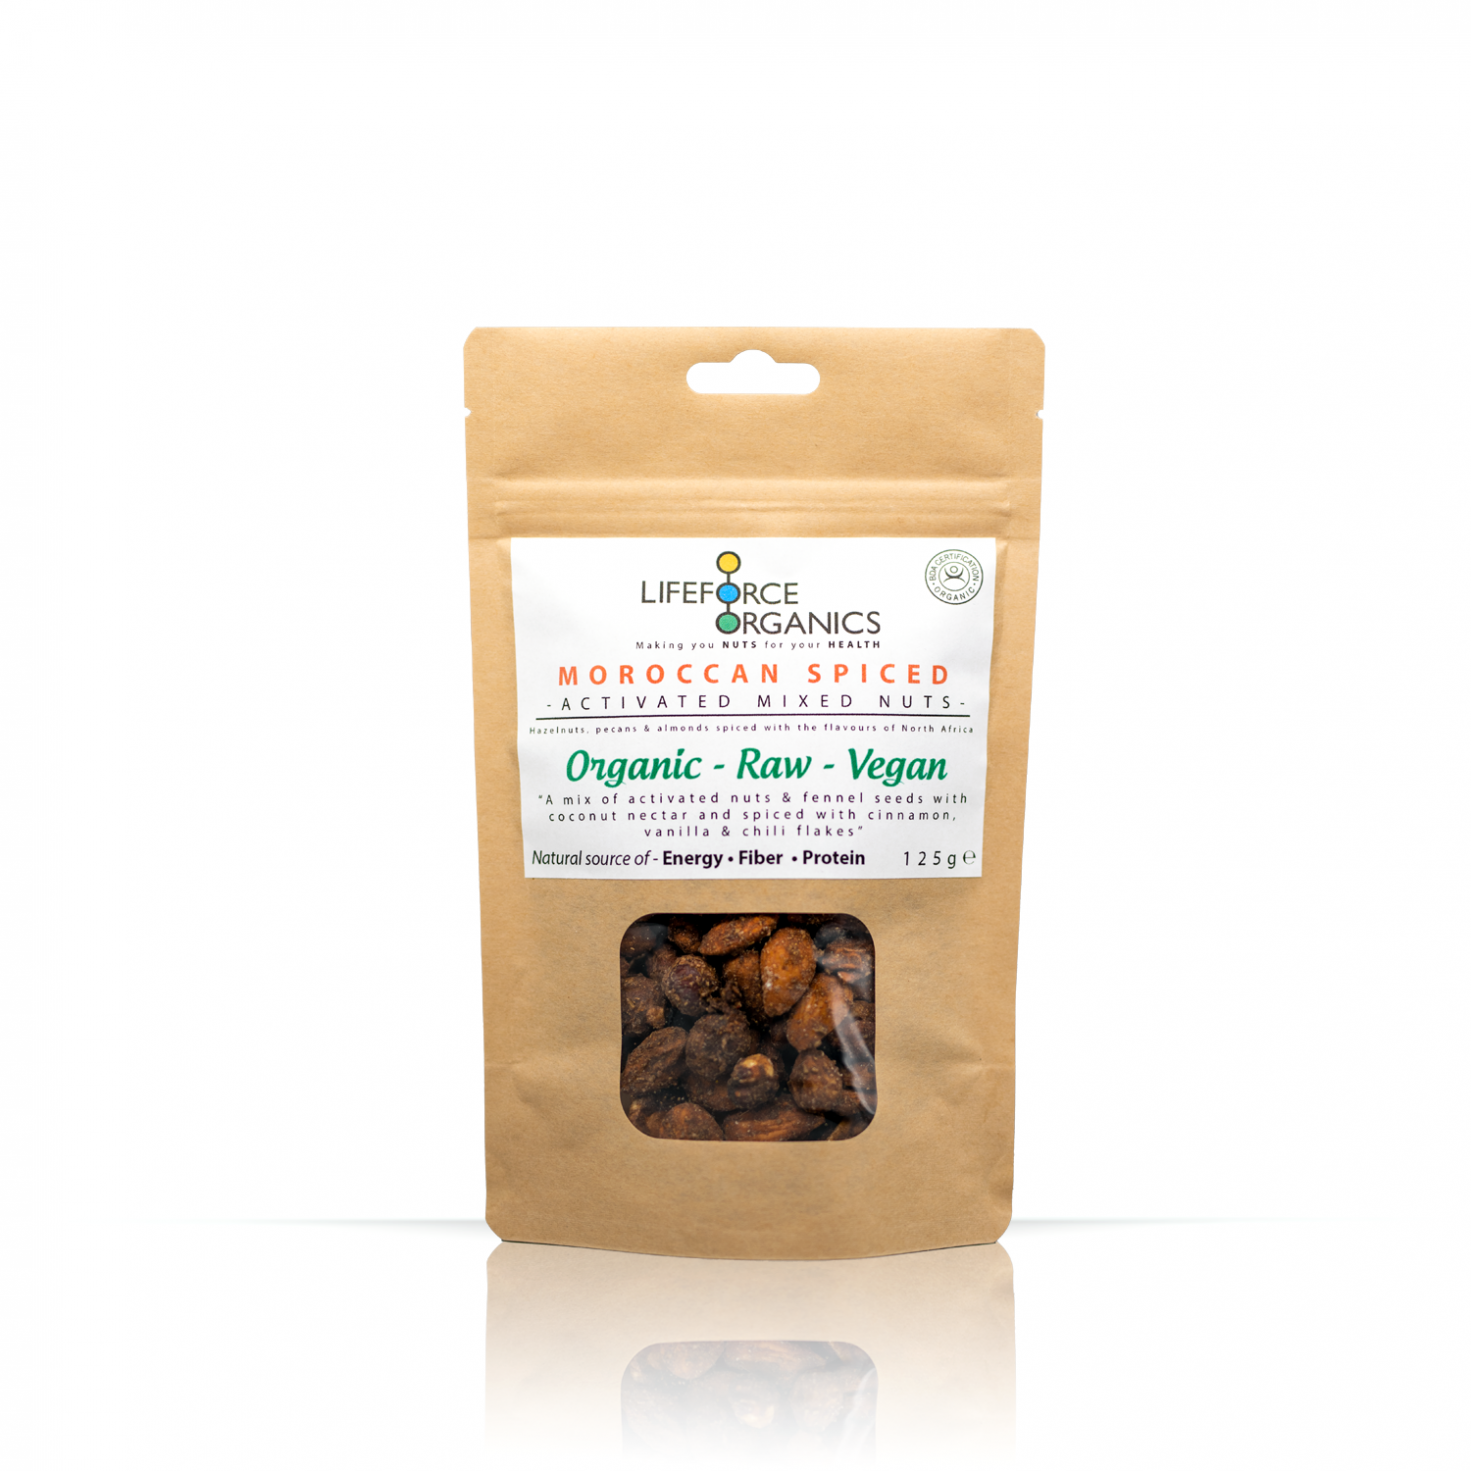 Moroccan Spiced Activated Mixed Nuts (Organic) 125g